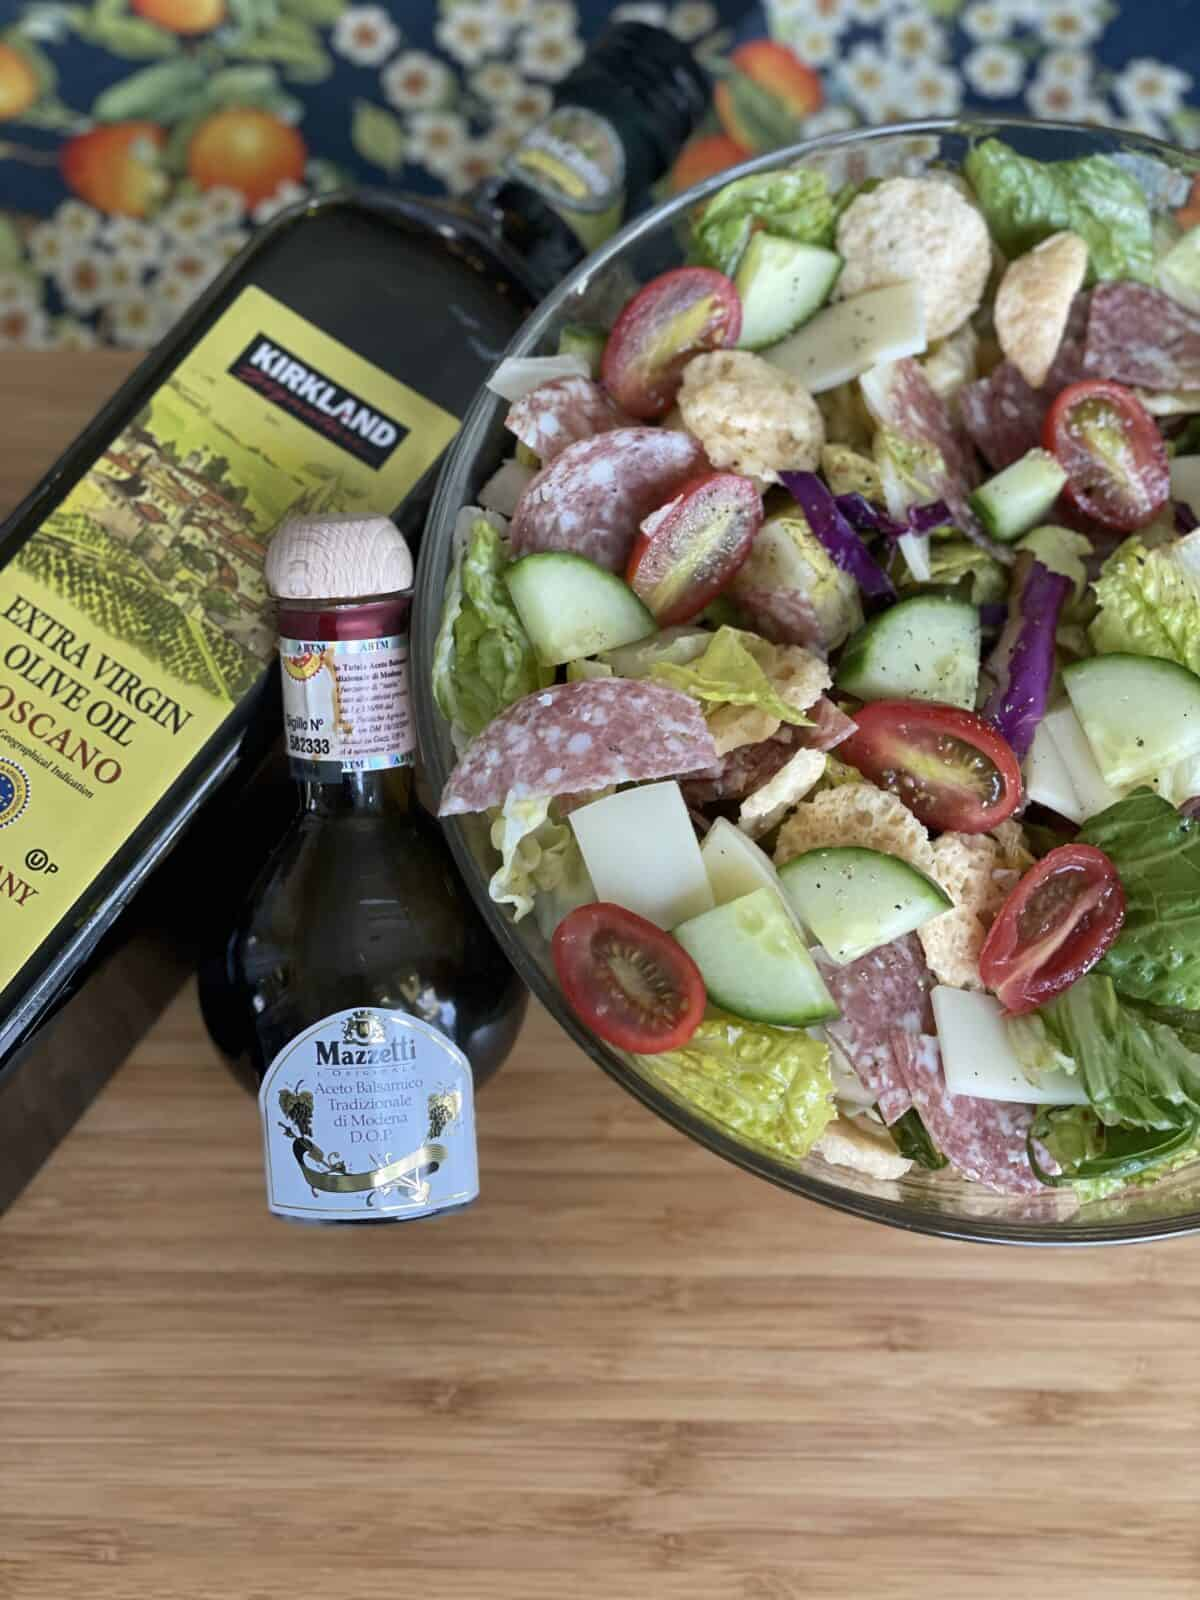 a big glass bowl of Italian chopped salad on a light brown cutting board next to a bottle of kirkland signature olive oil and mazzeti balsamic vinegar